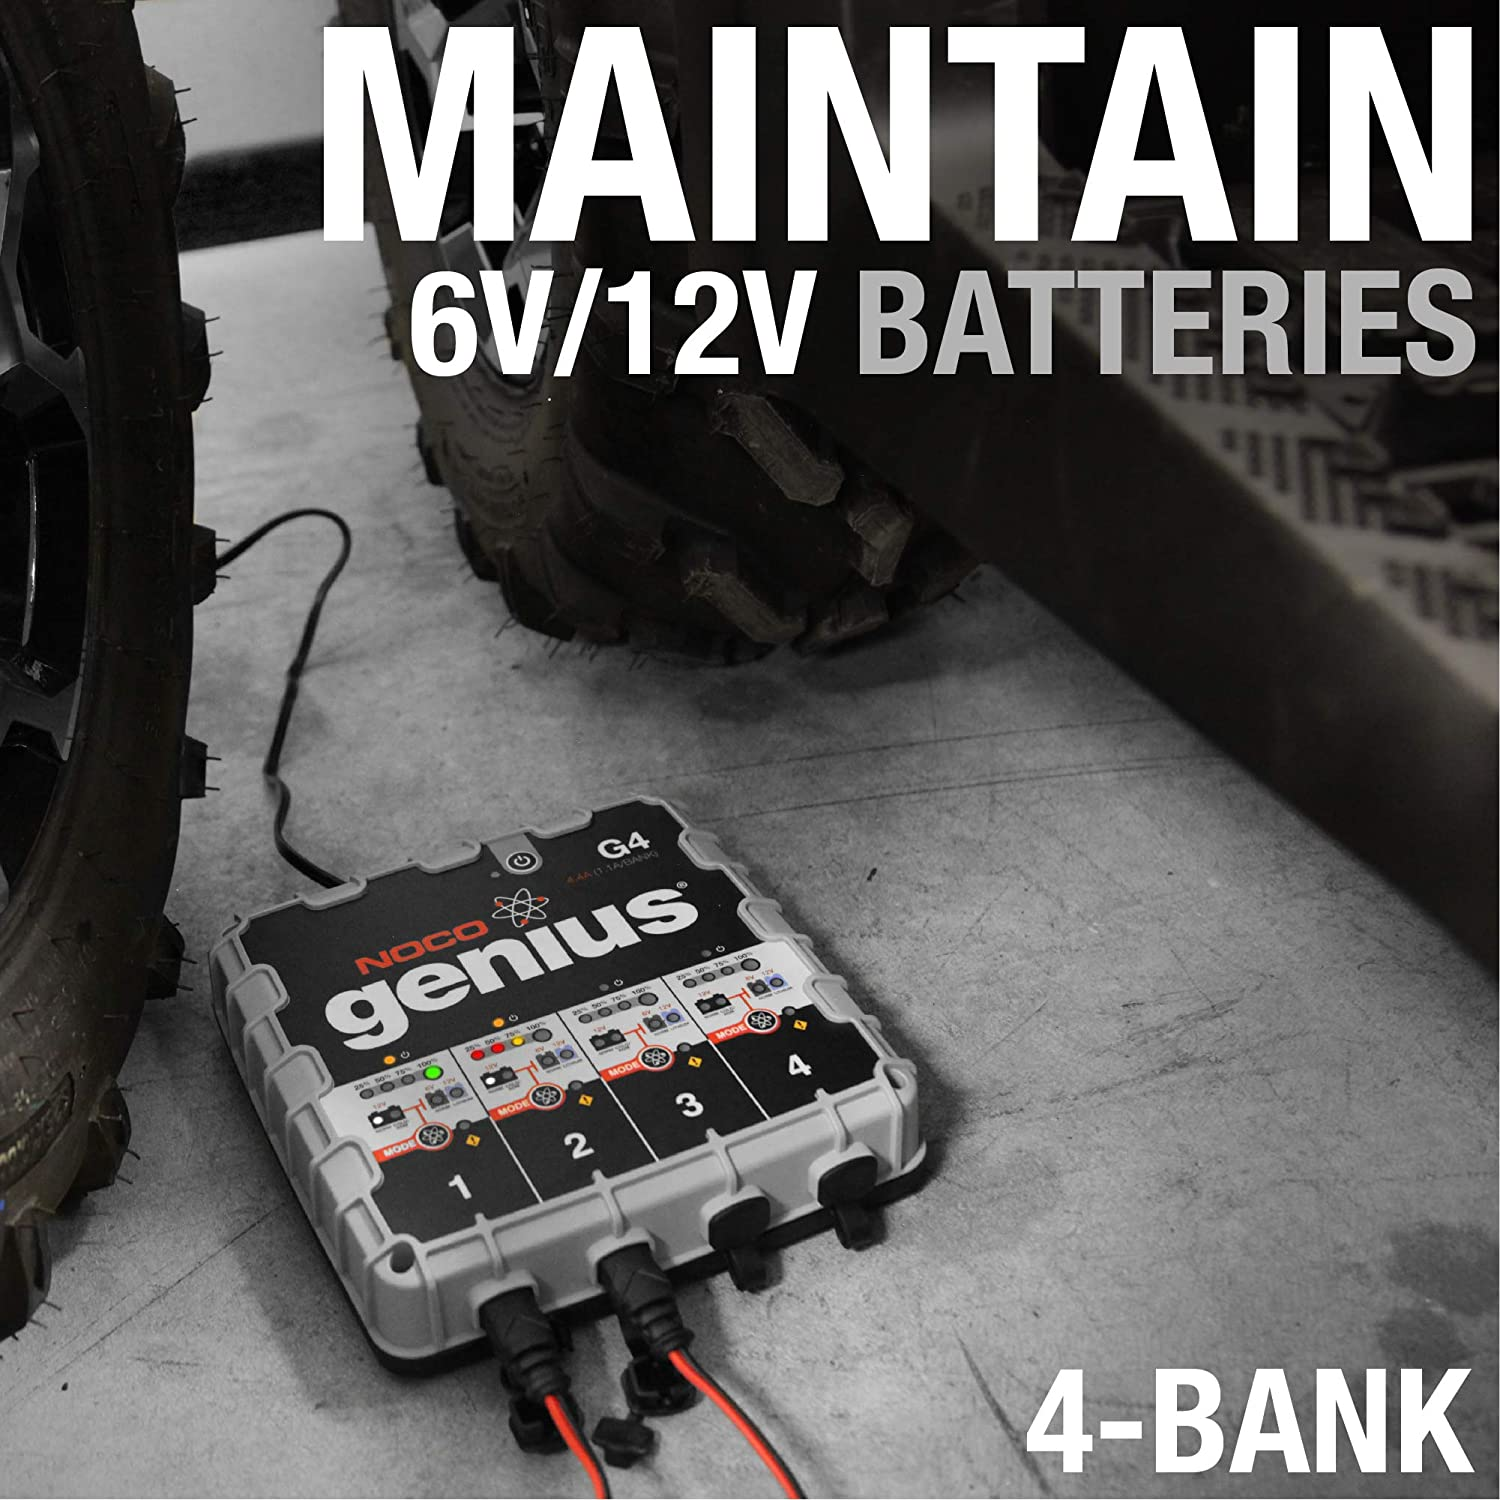 NOCO Genius G1100 6V//12V 1.1 Amp Advanced Battery Trickle Charger Maintainer